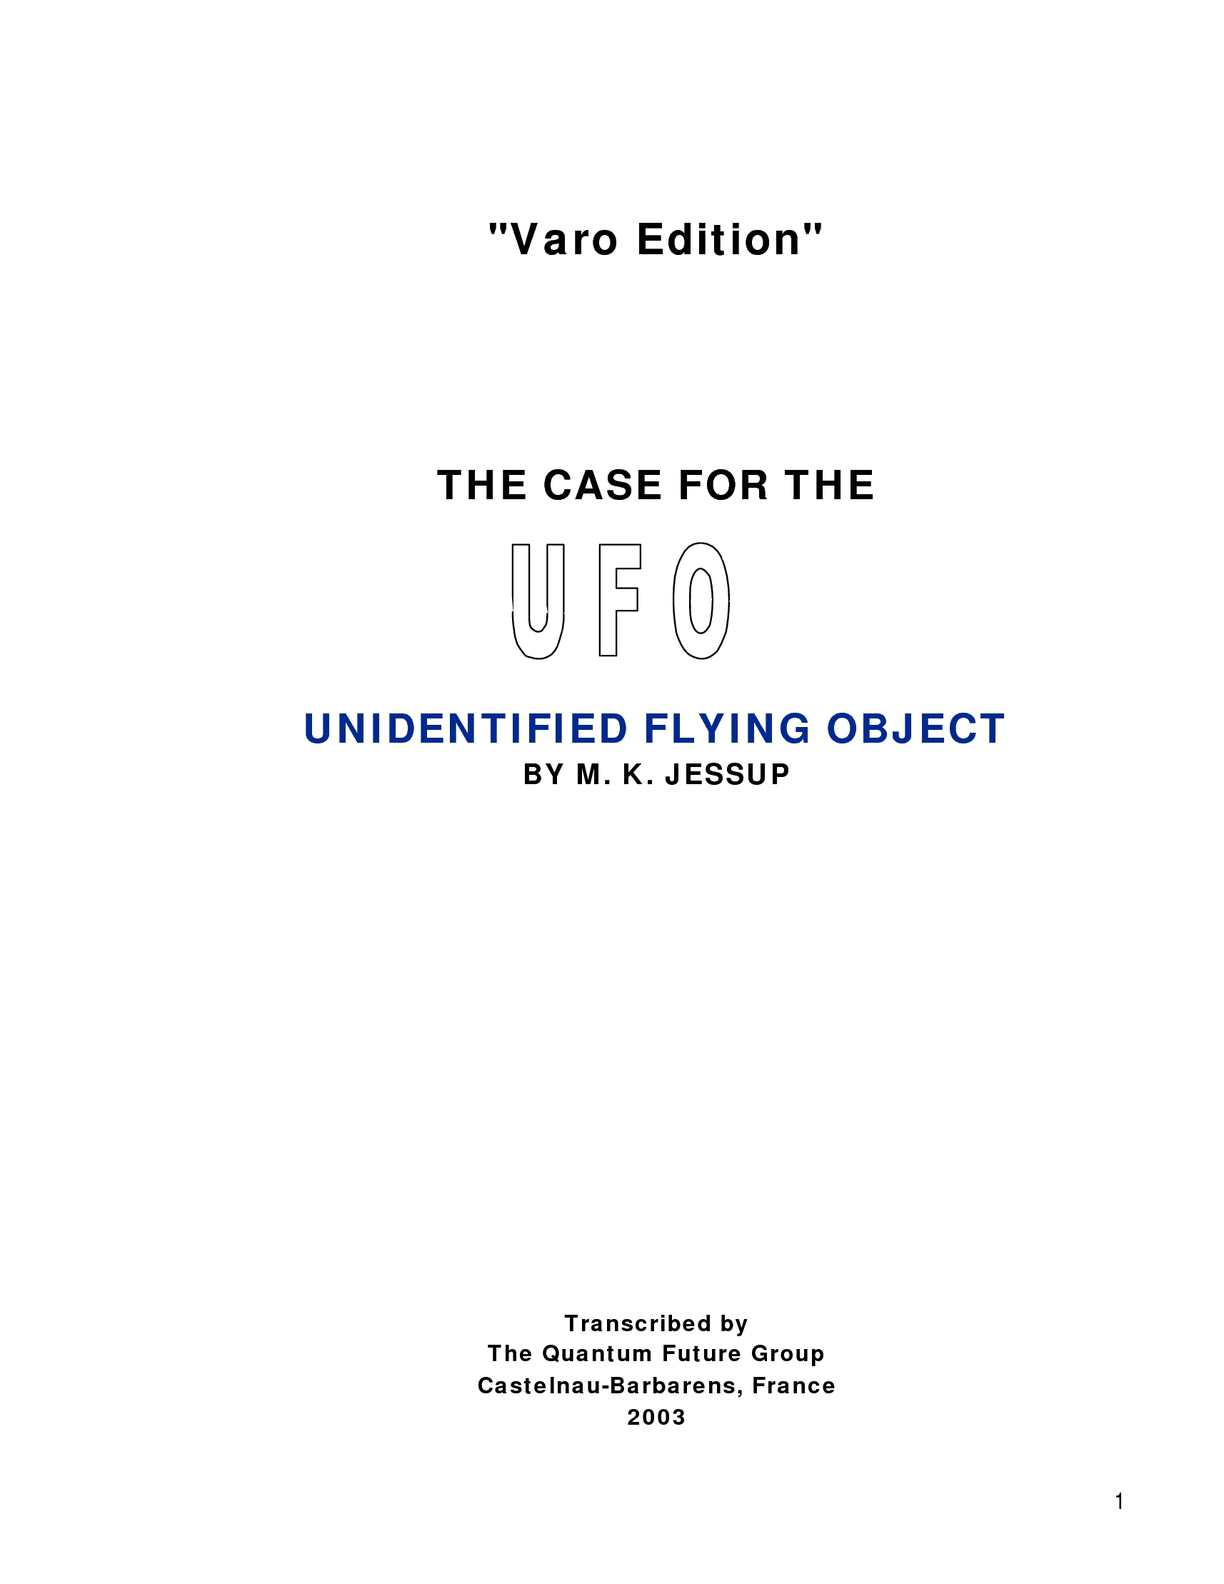 ba19a48cf9 Calaméo - The case for the UFO (M. K. Jessup)